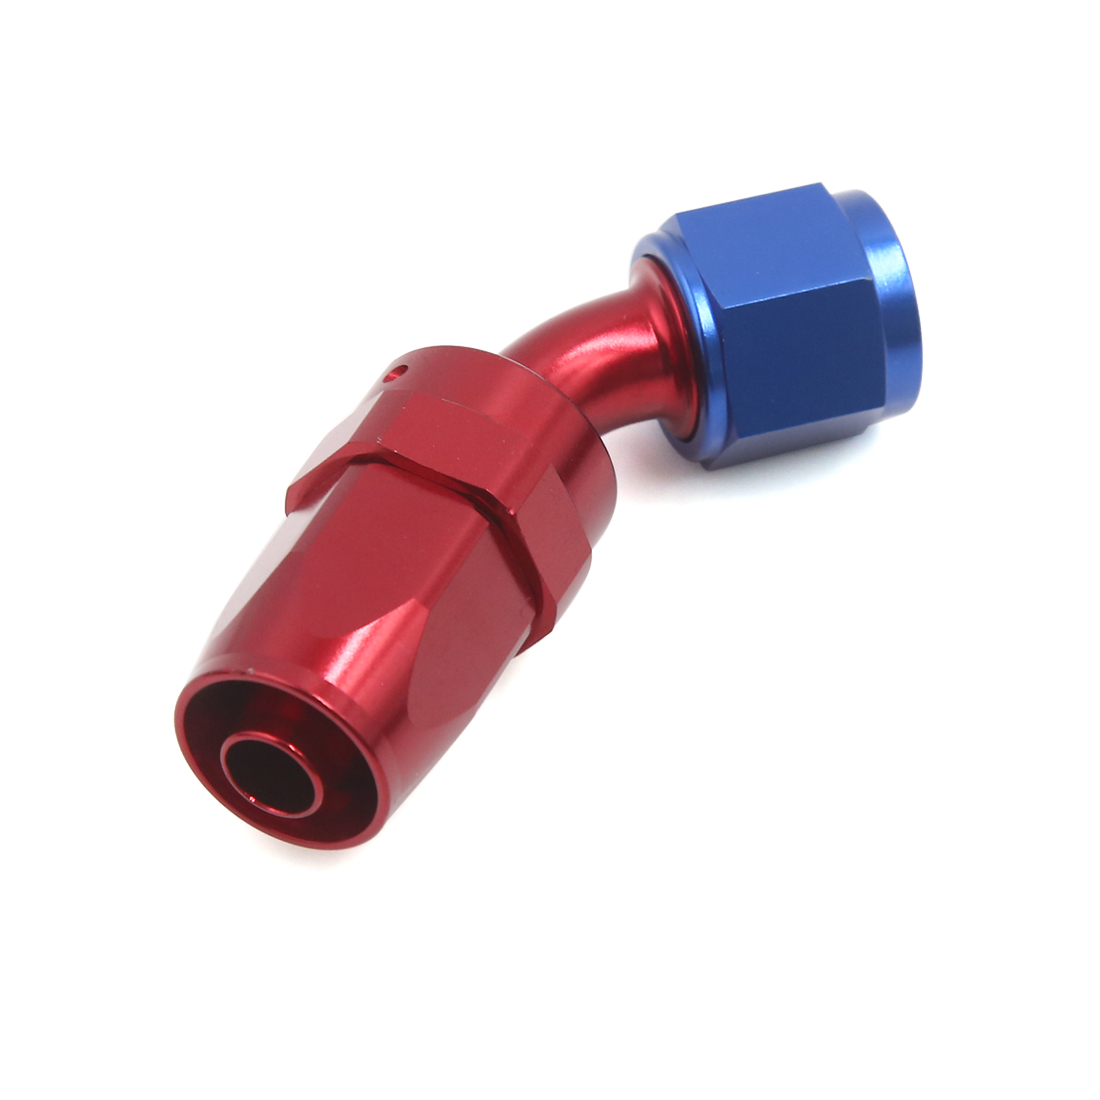 Aluminum Alloy 45 Degree Hose End Car Connector Fittings Adaptor for 10mm Pipe